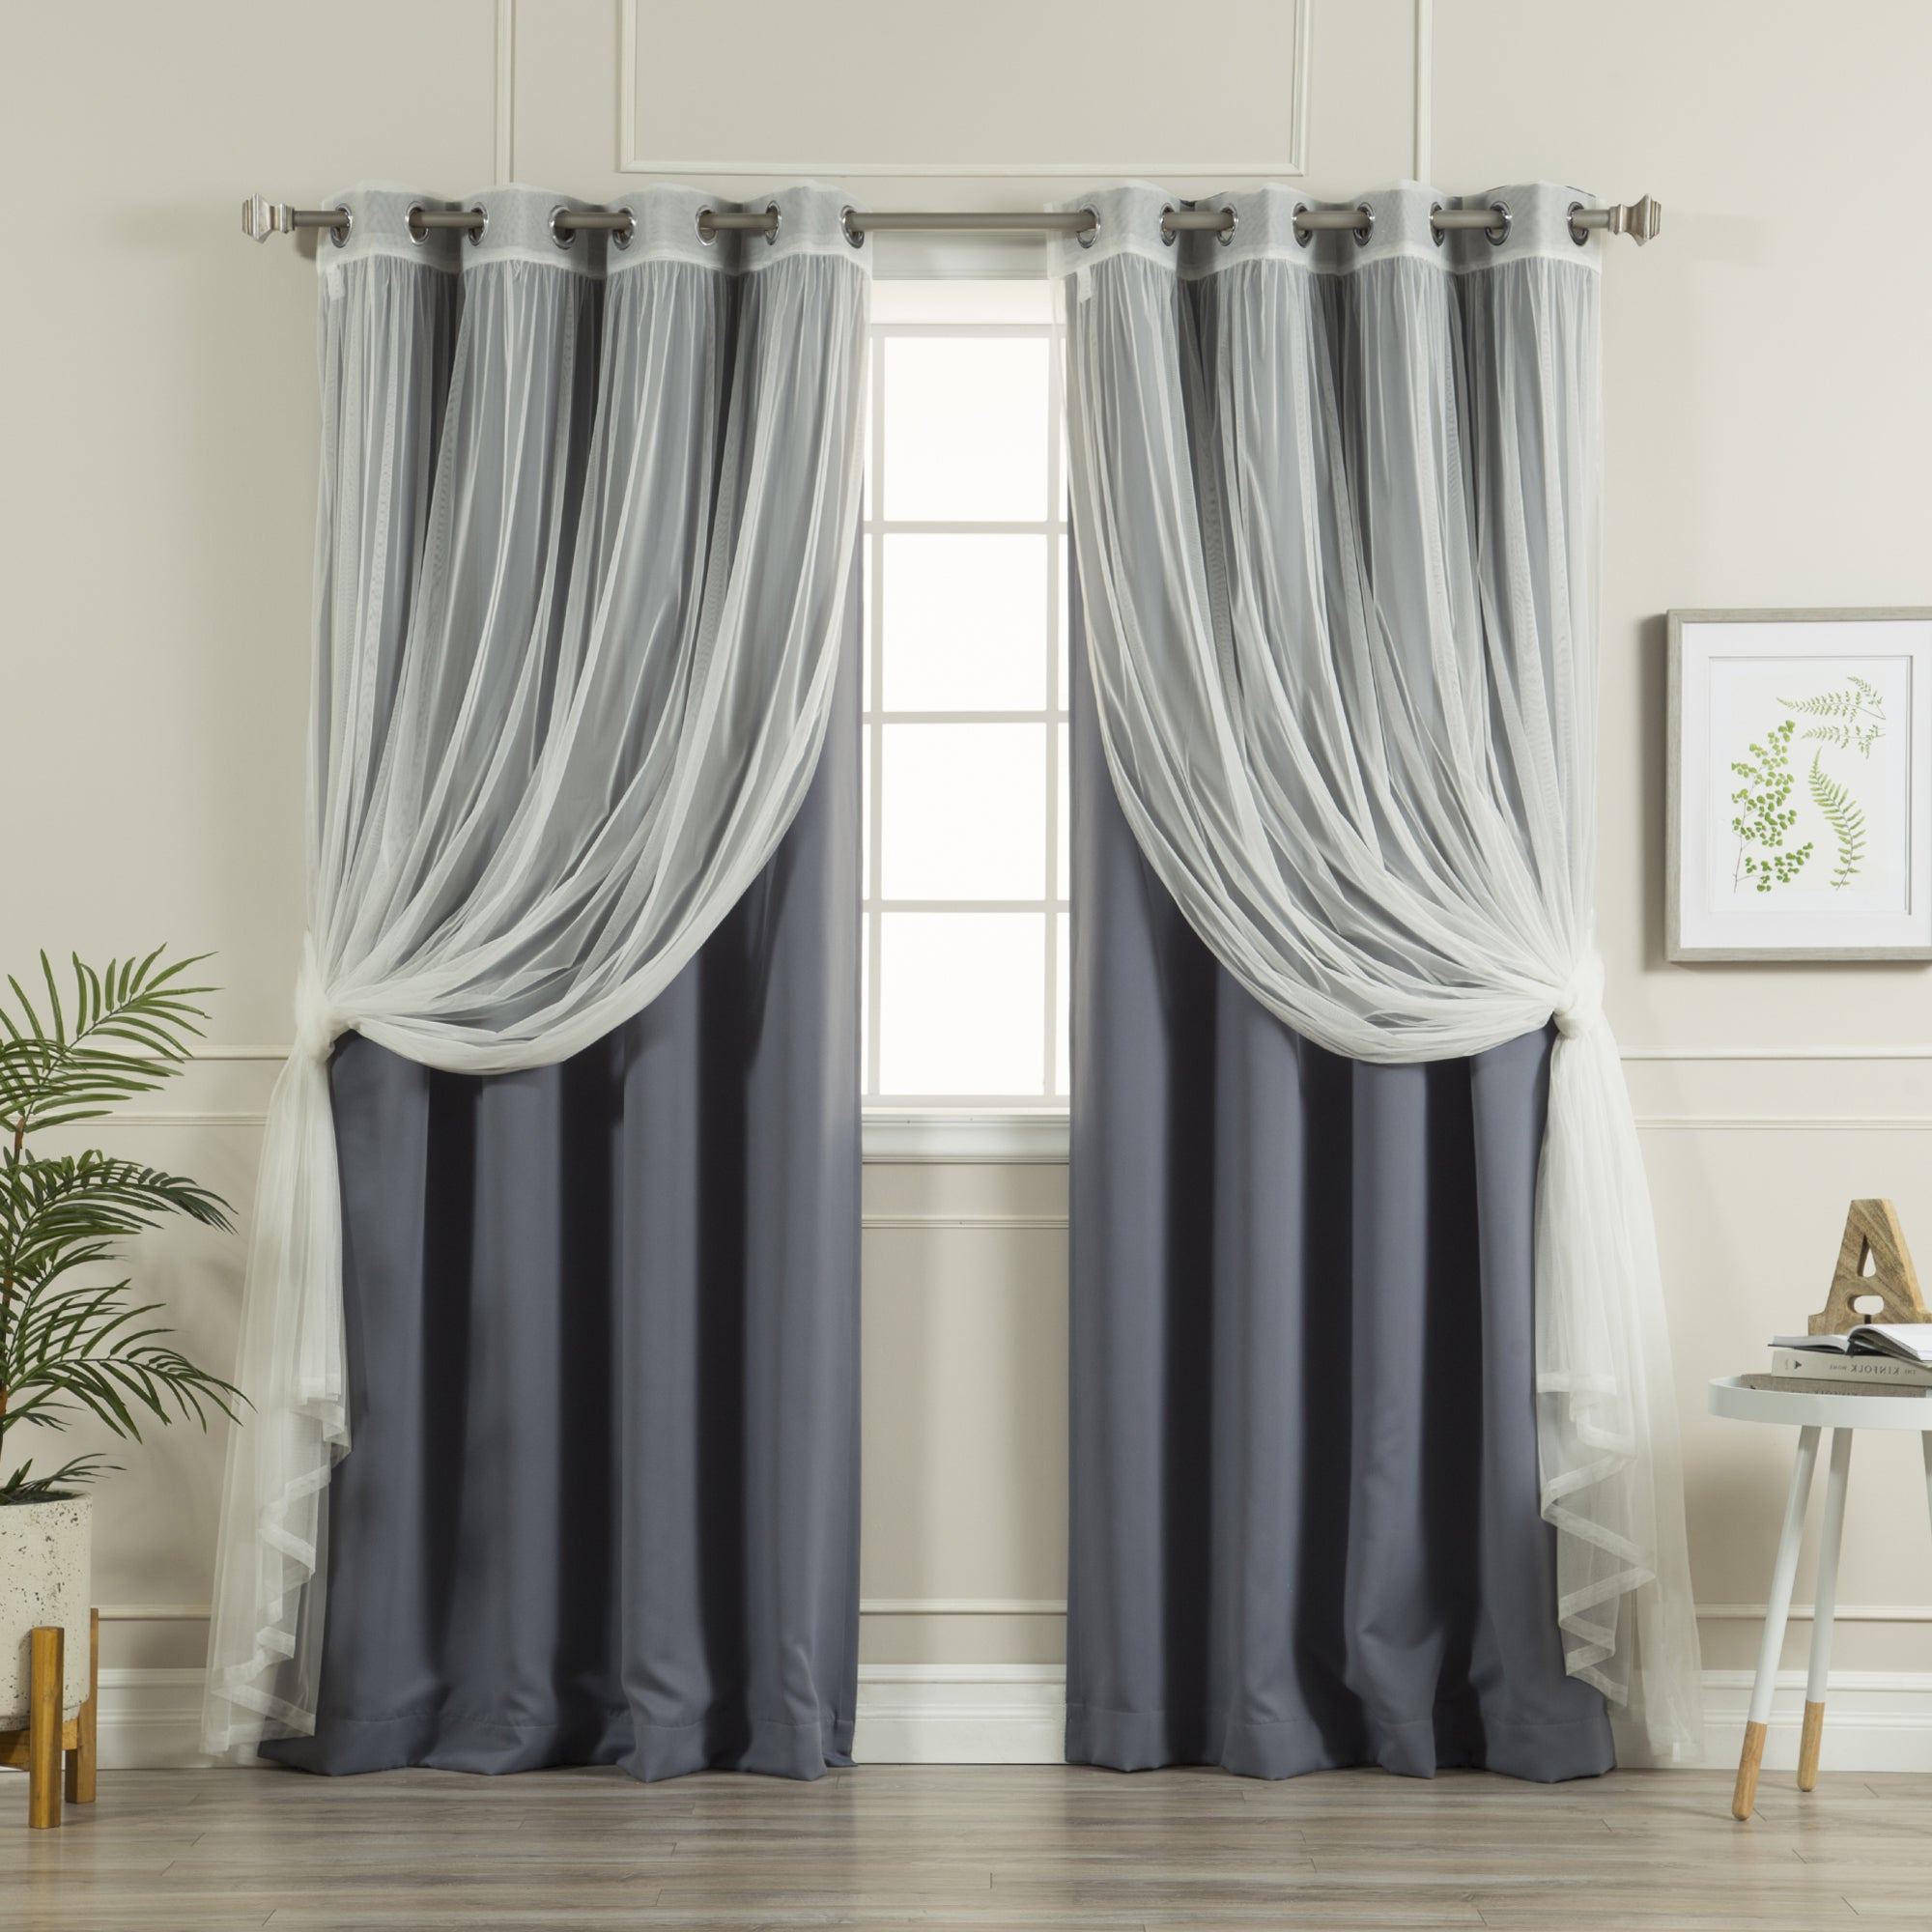 Well Known Aurora Home Mix And Match Blackout Tulle Lace Sheer 4 Piece Curtain Panel Set With Regard To Mix And Match Blackout Tulle Lace Sheer Curtain Panel Sets (View 3 of 20)